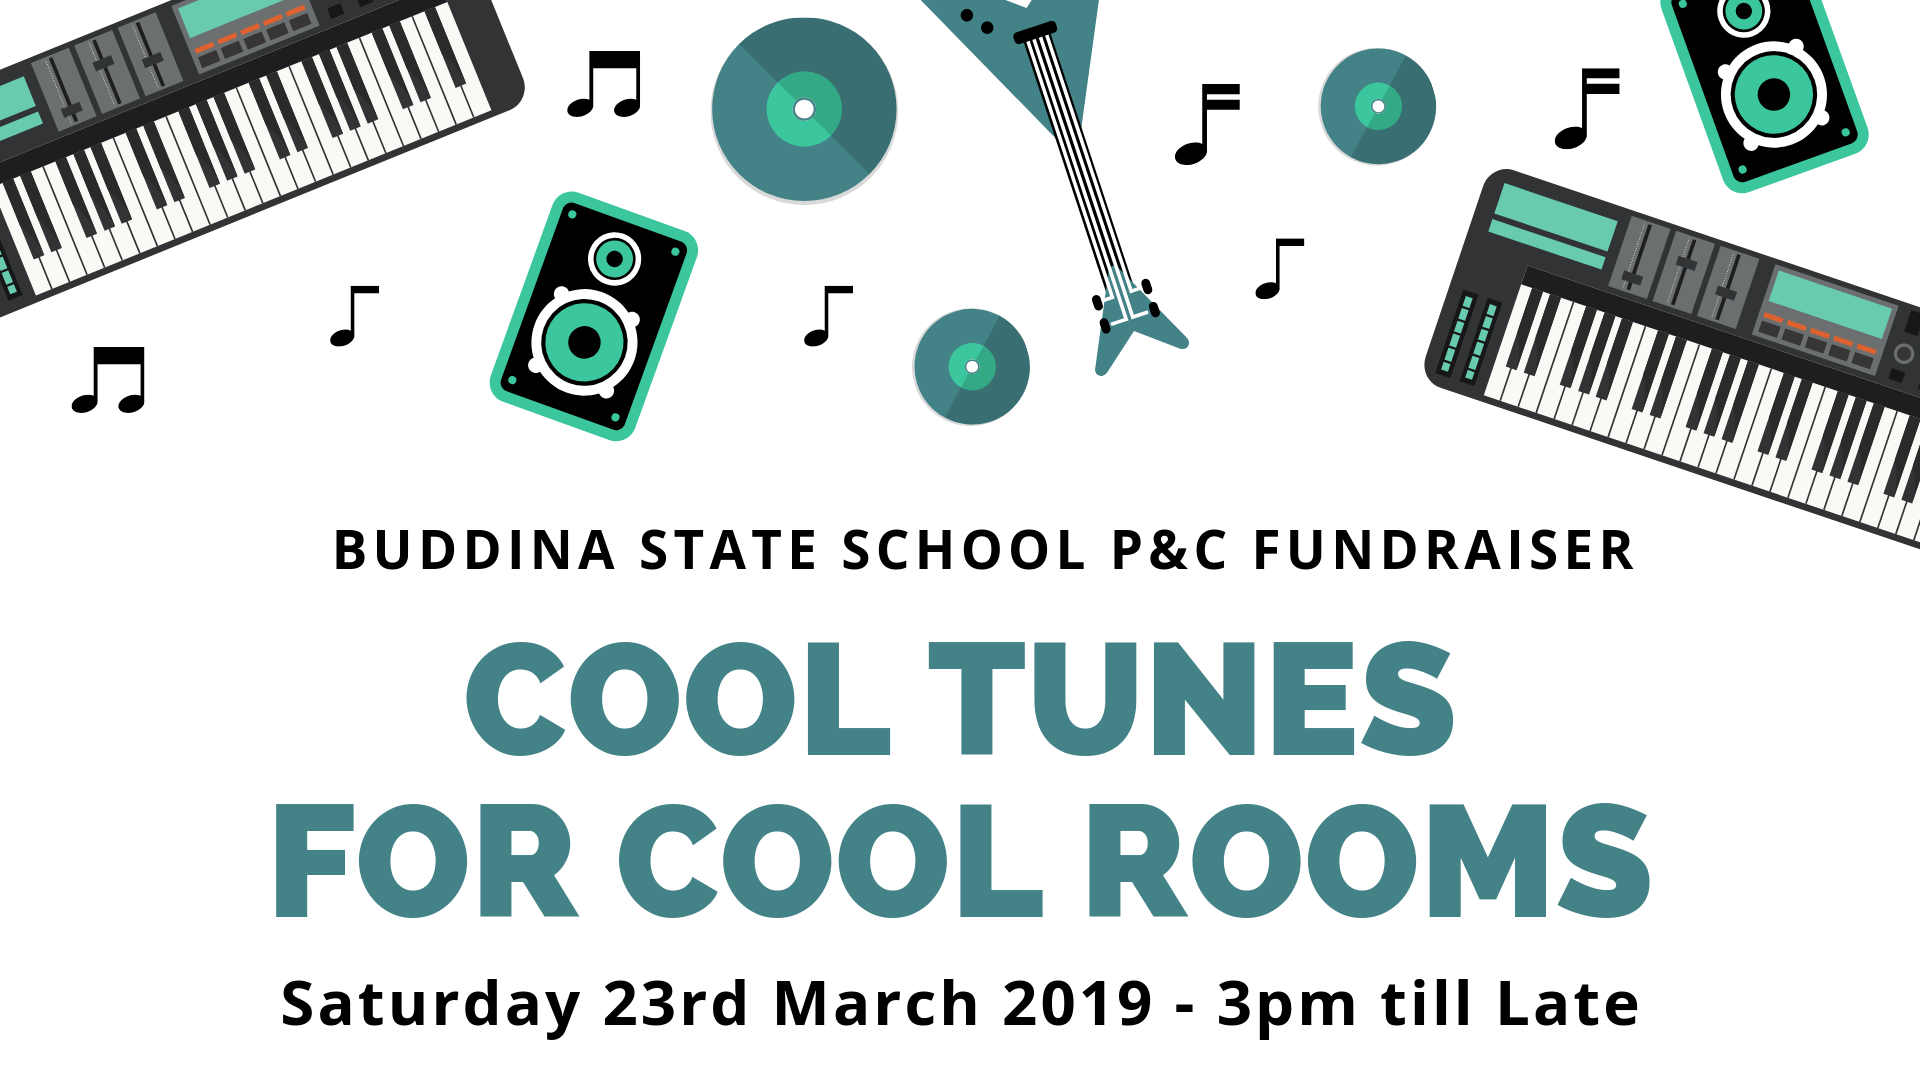 Buddina State School P&C - Cool Tunes for Cool Rooms 2019